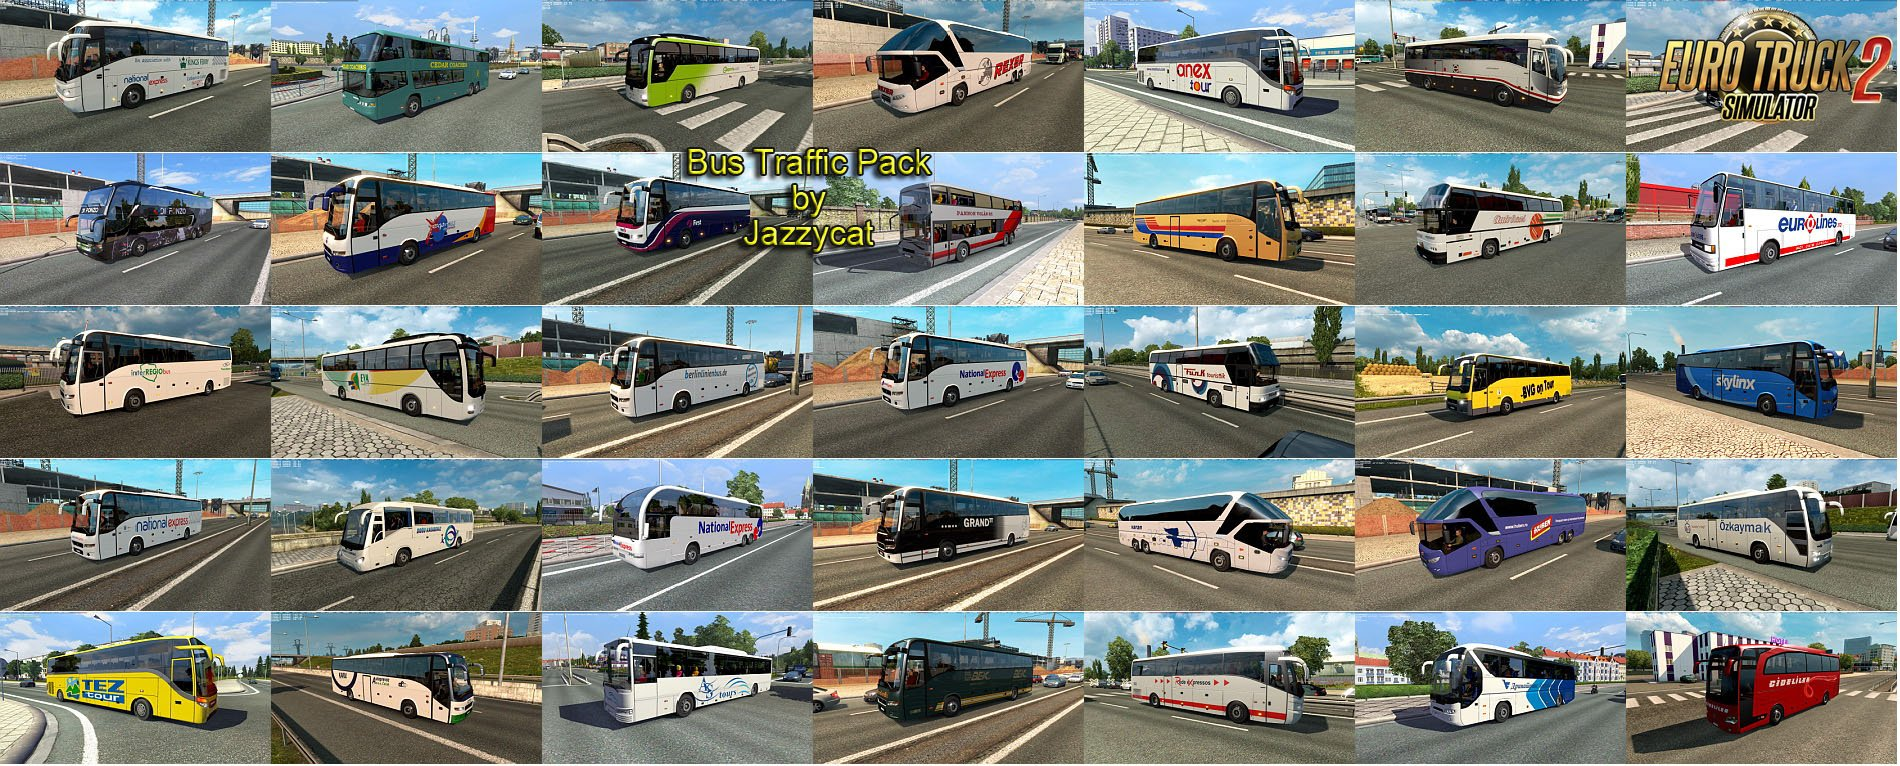 Bus Traffic Pack v2.3 by Jazzycat (1.27.x)